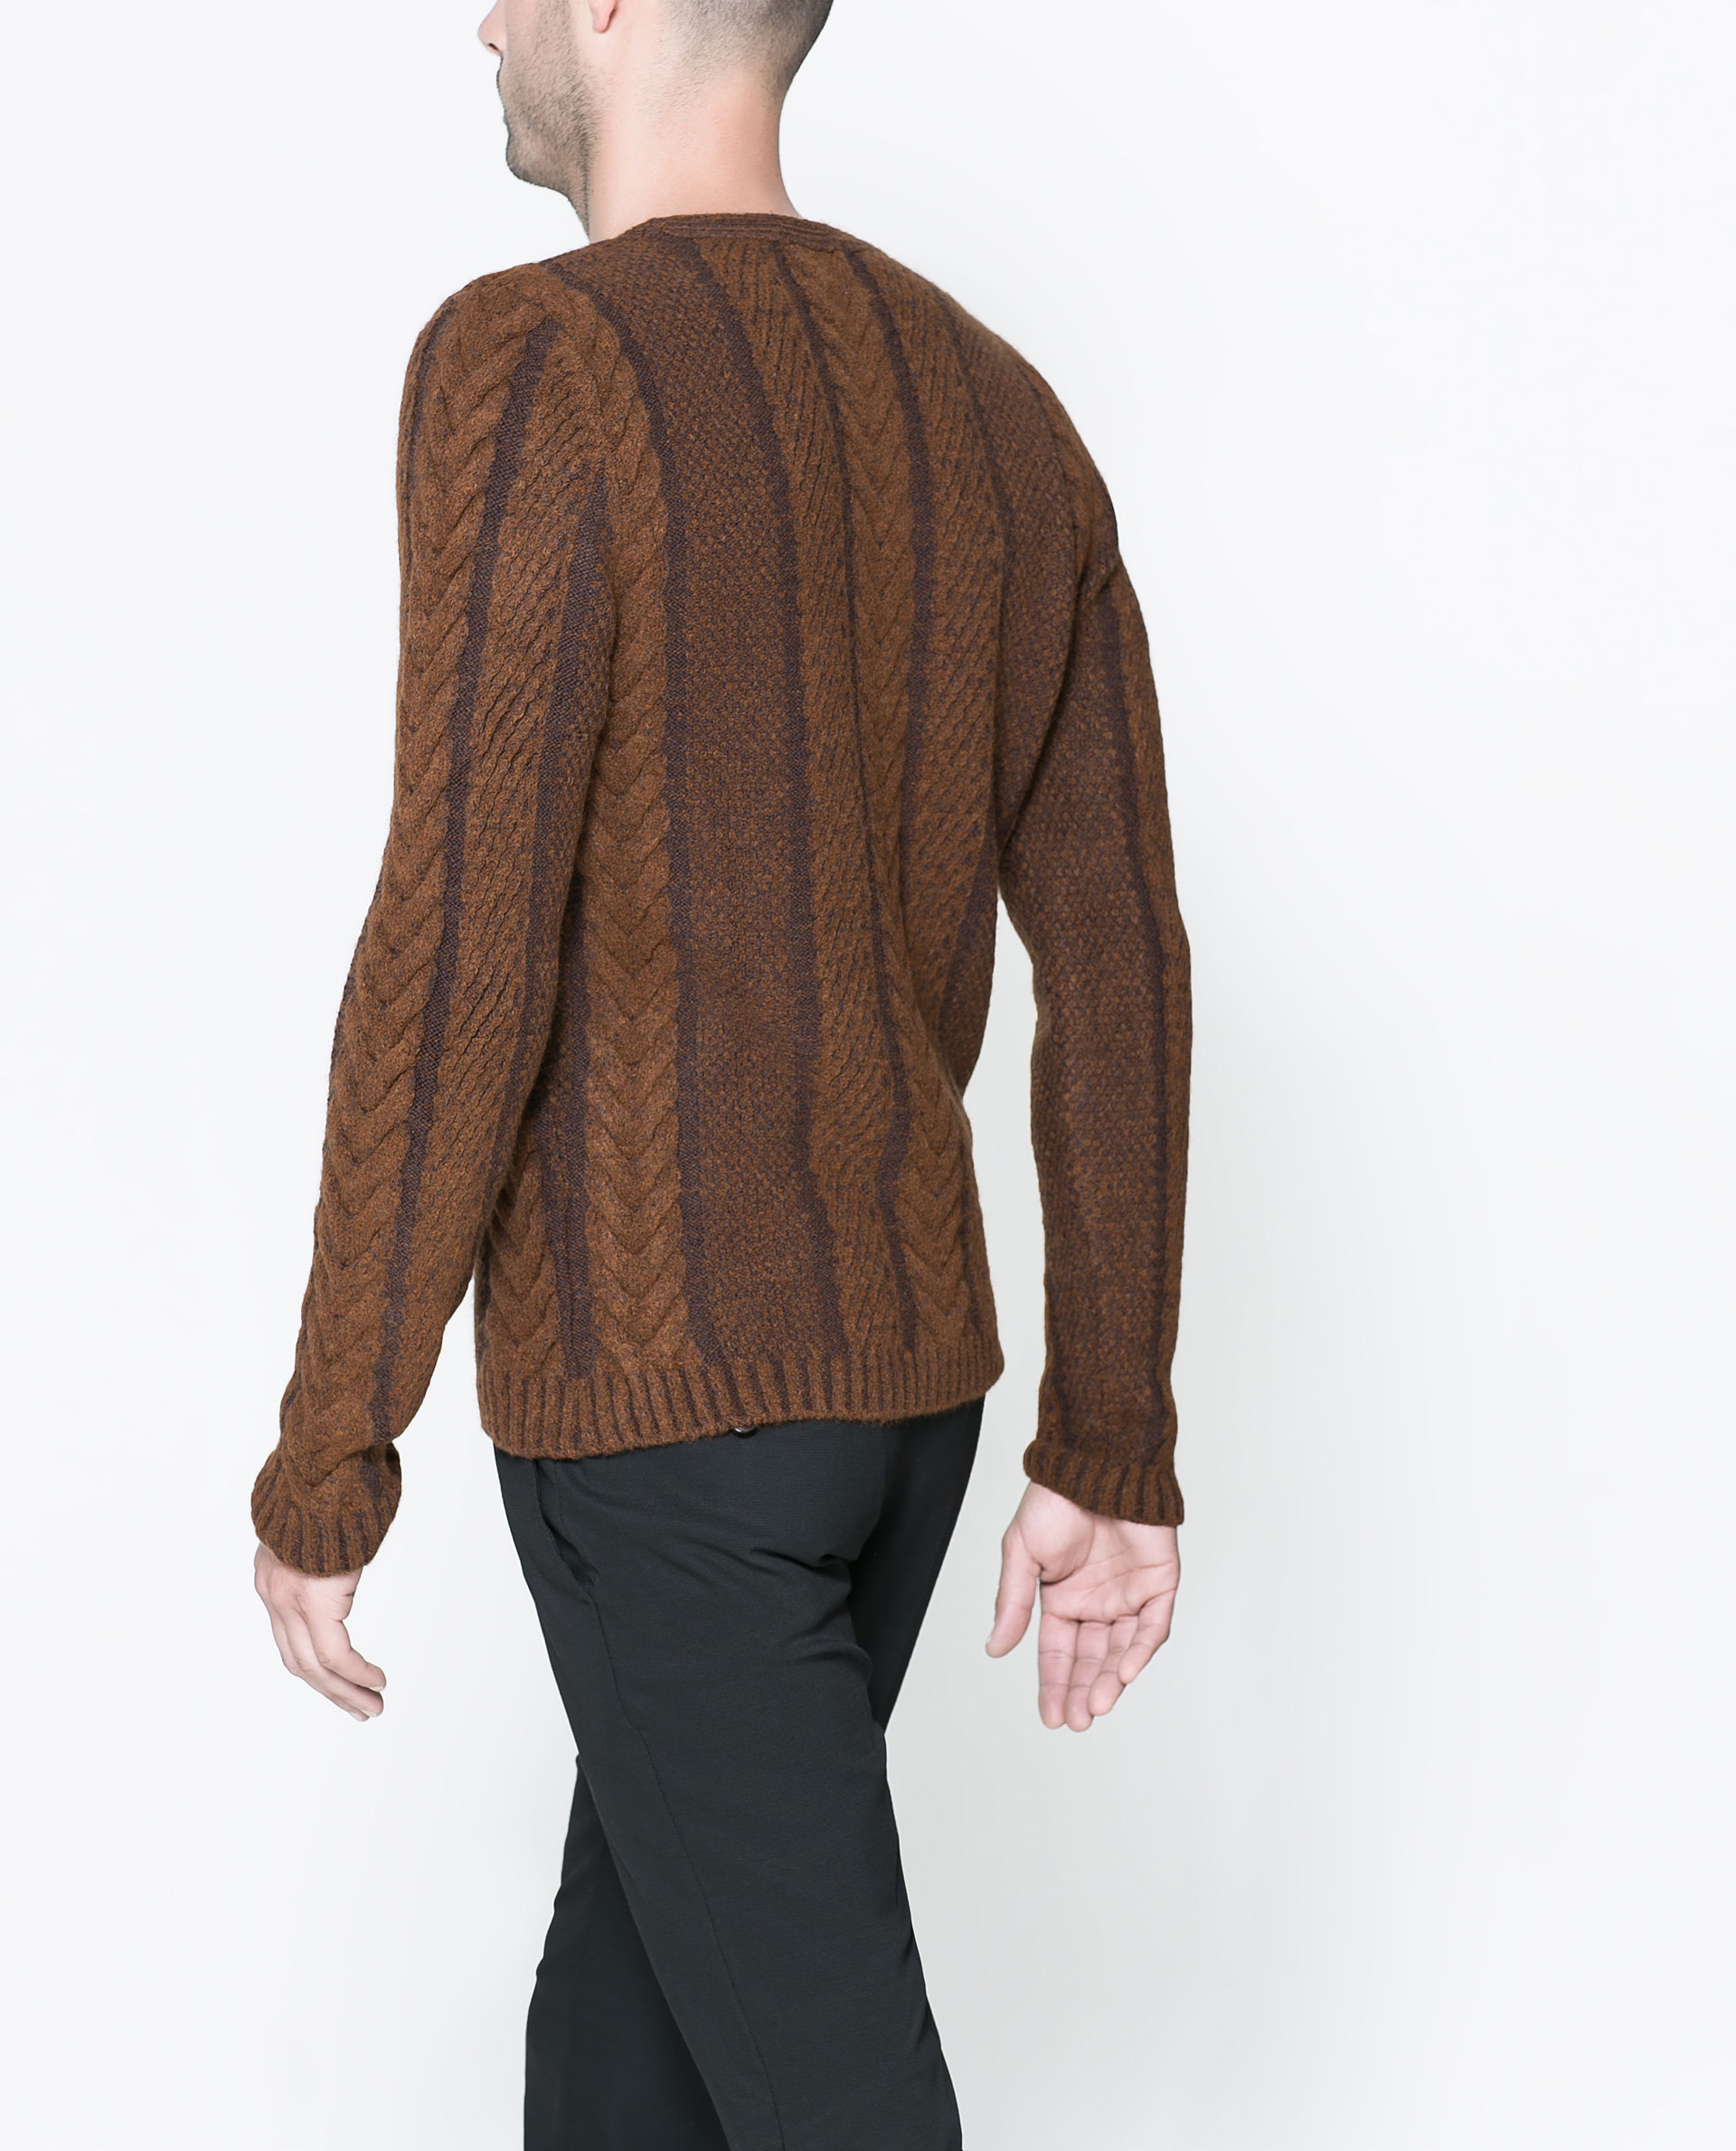 Zara Cable Knit Sweater In Brown For Men Lyst